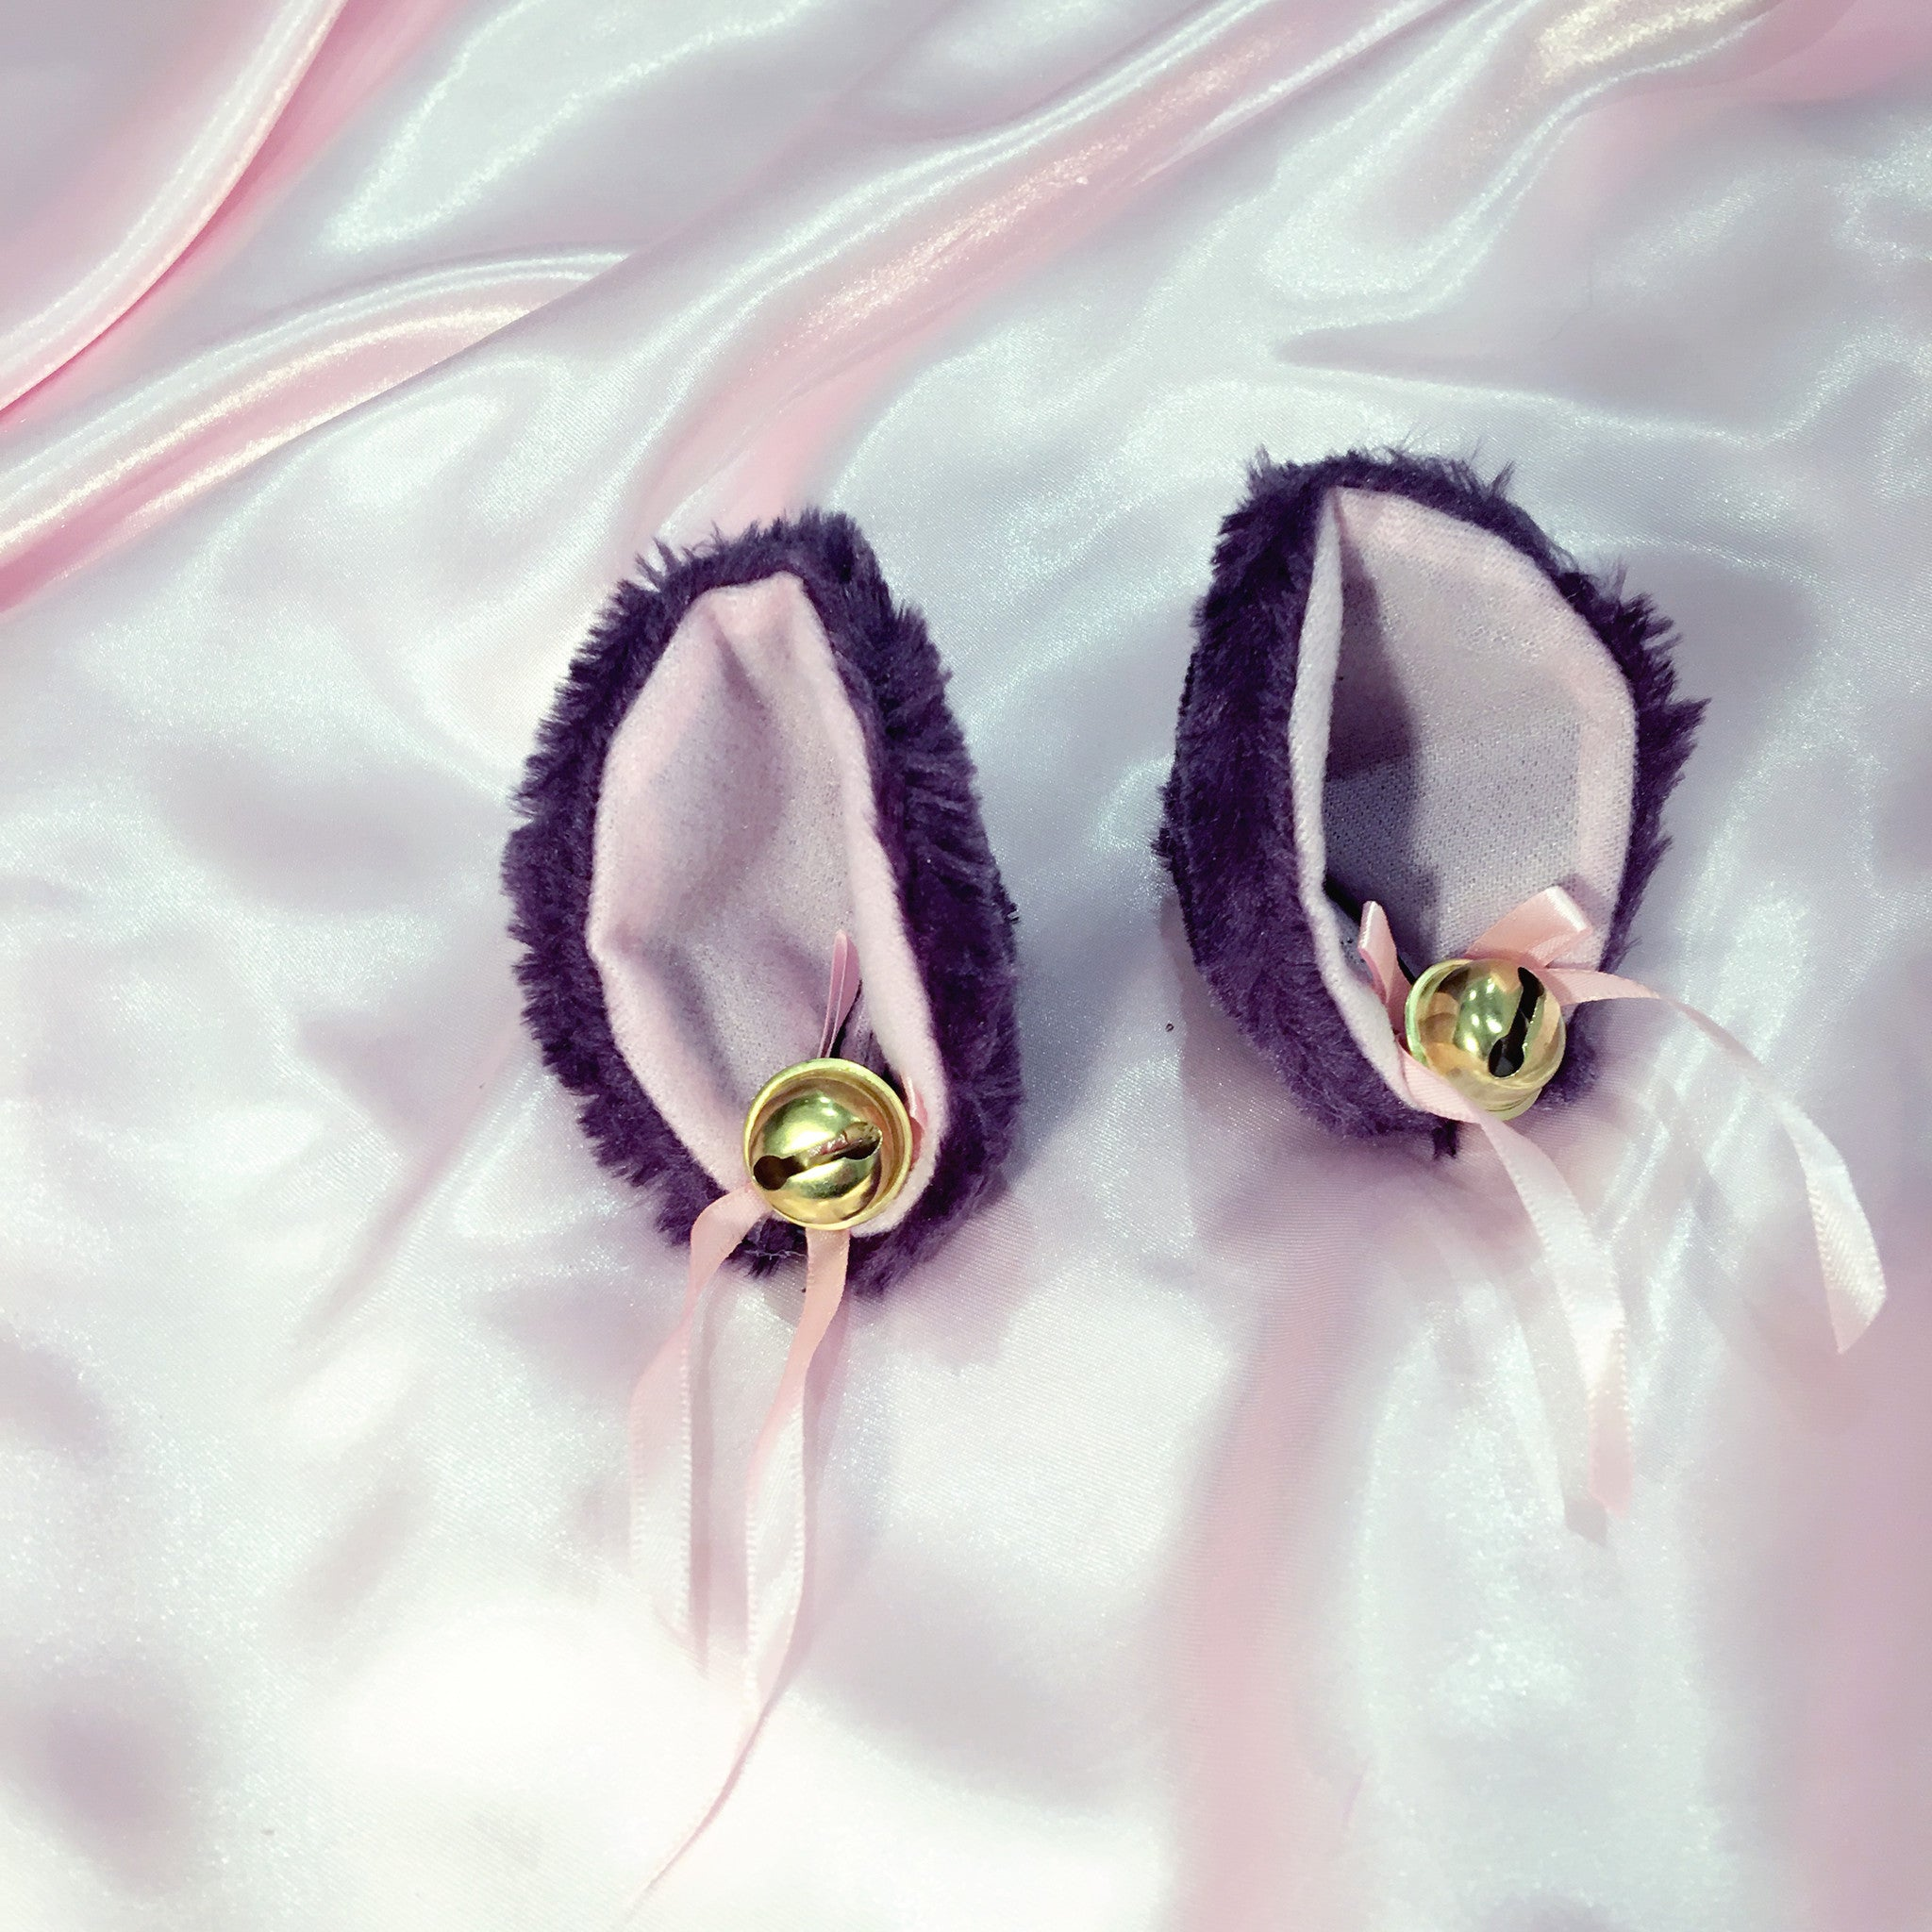 Black Pink White Purple Kitty Ears PetPlay Ears Kitten Hair Clips Bell Bow - Bdsm Fetish Cute Kawaii Lolita Cat Style Ears at BABY VOODOO - BABY VOODOO.COM